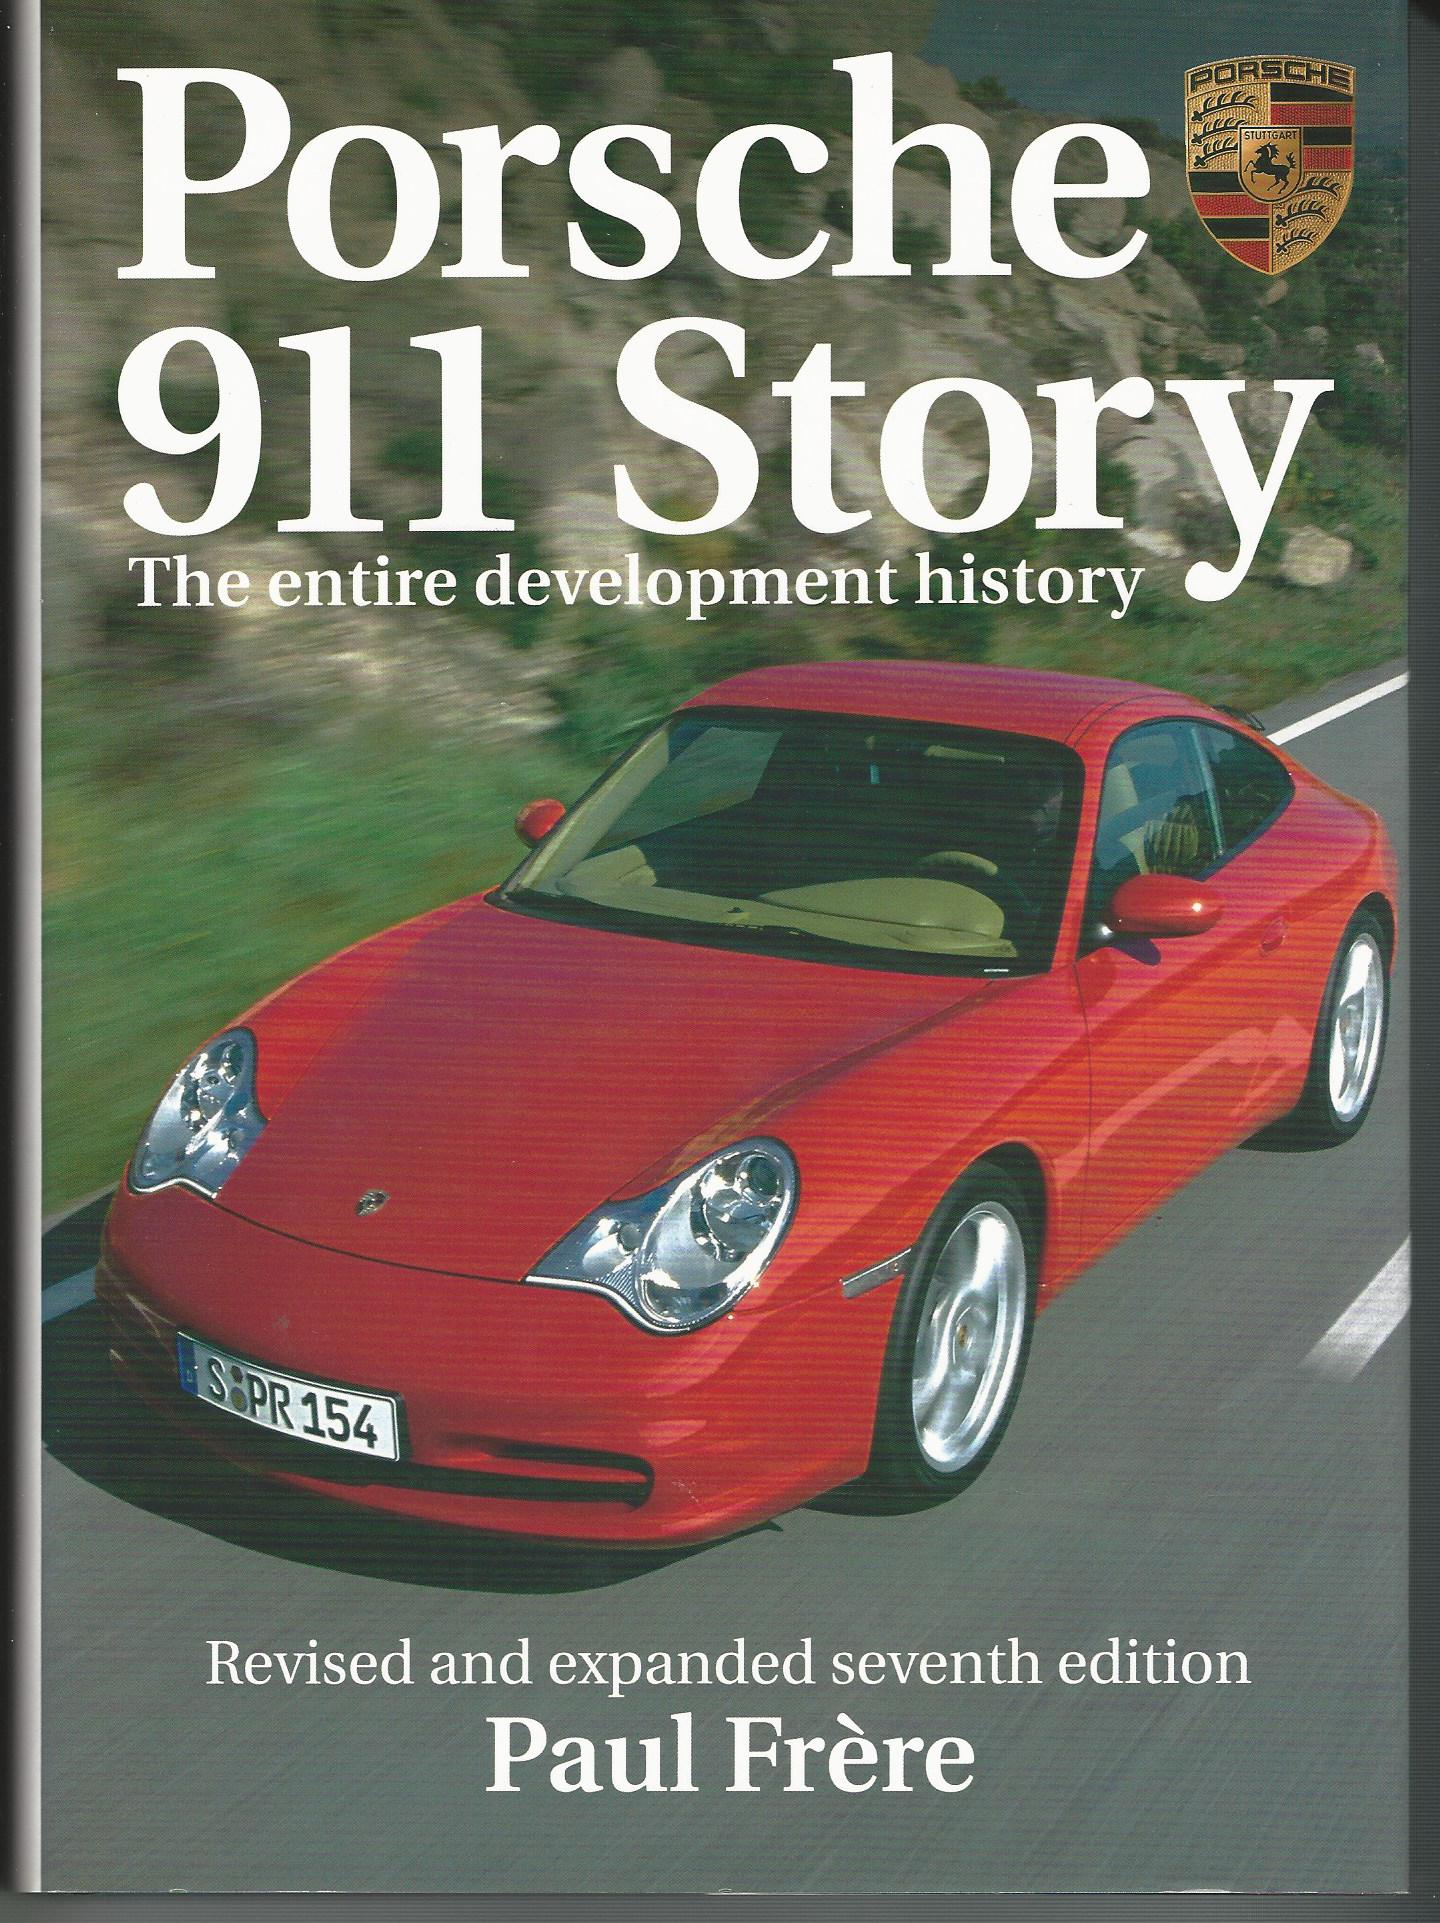 Image for Porsche 911 Story: The entire development history.